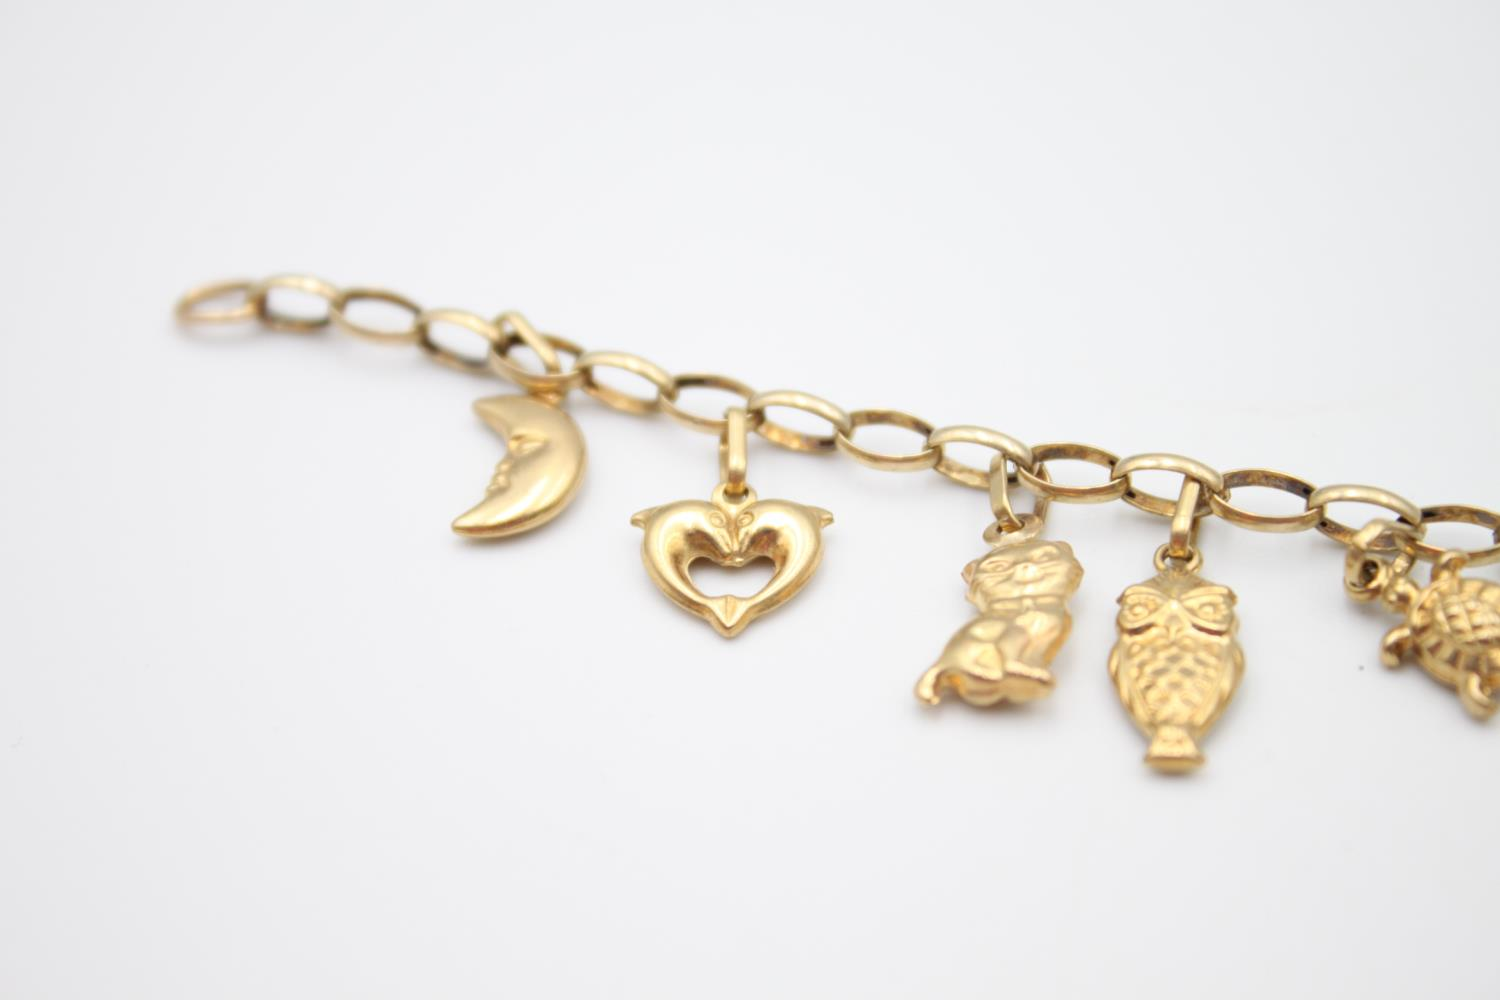 vintage 9ct gold rolo link charm bracelet with a variety of charms 5.7g - Image 2 of 7